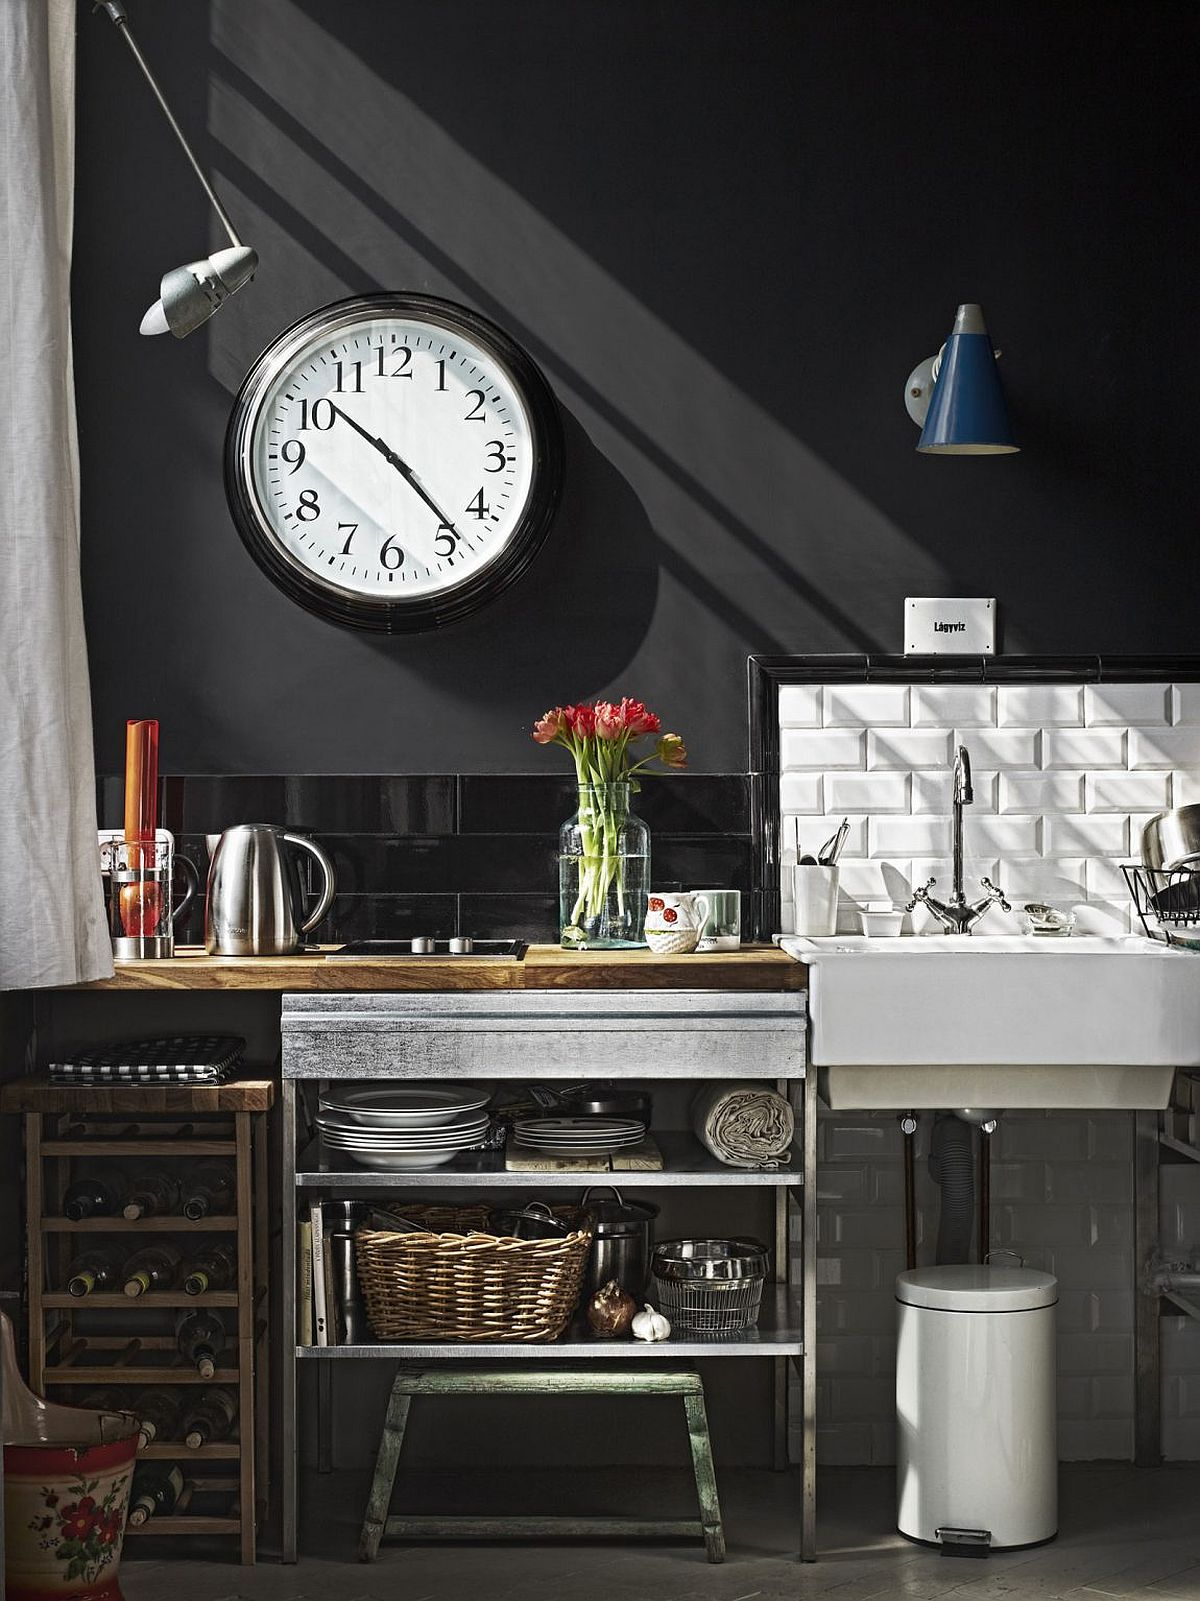 Tiny kitchenette for the small Budapest apartment with chalkboard wall